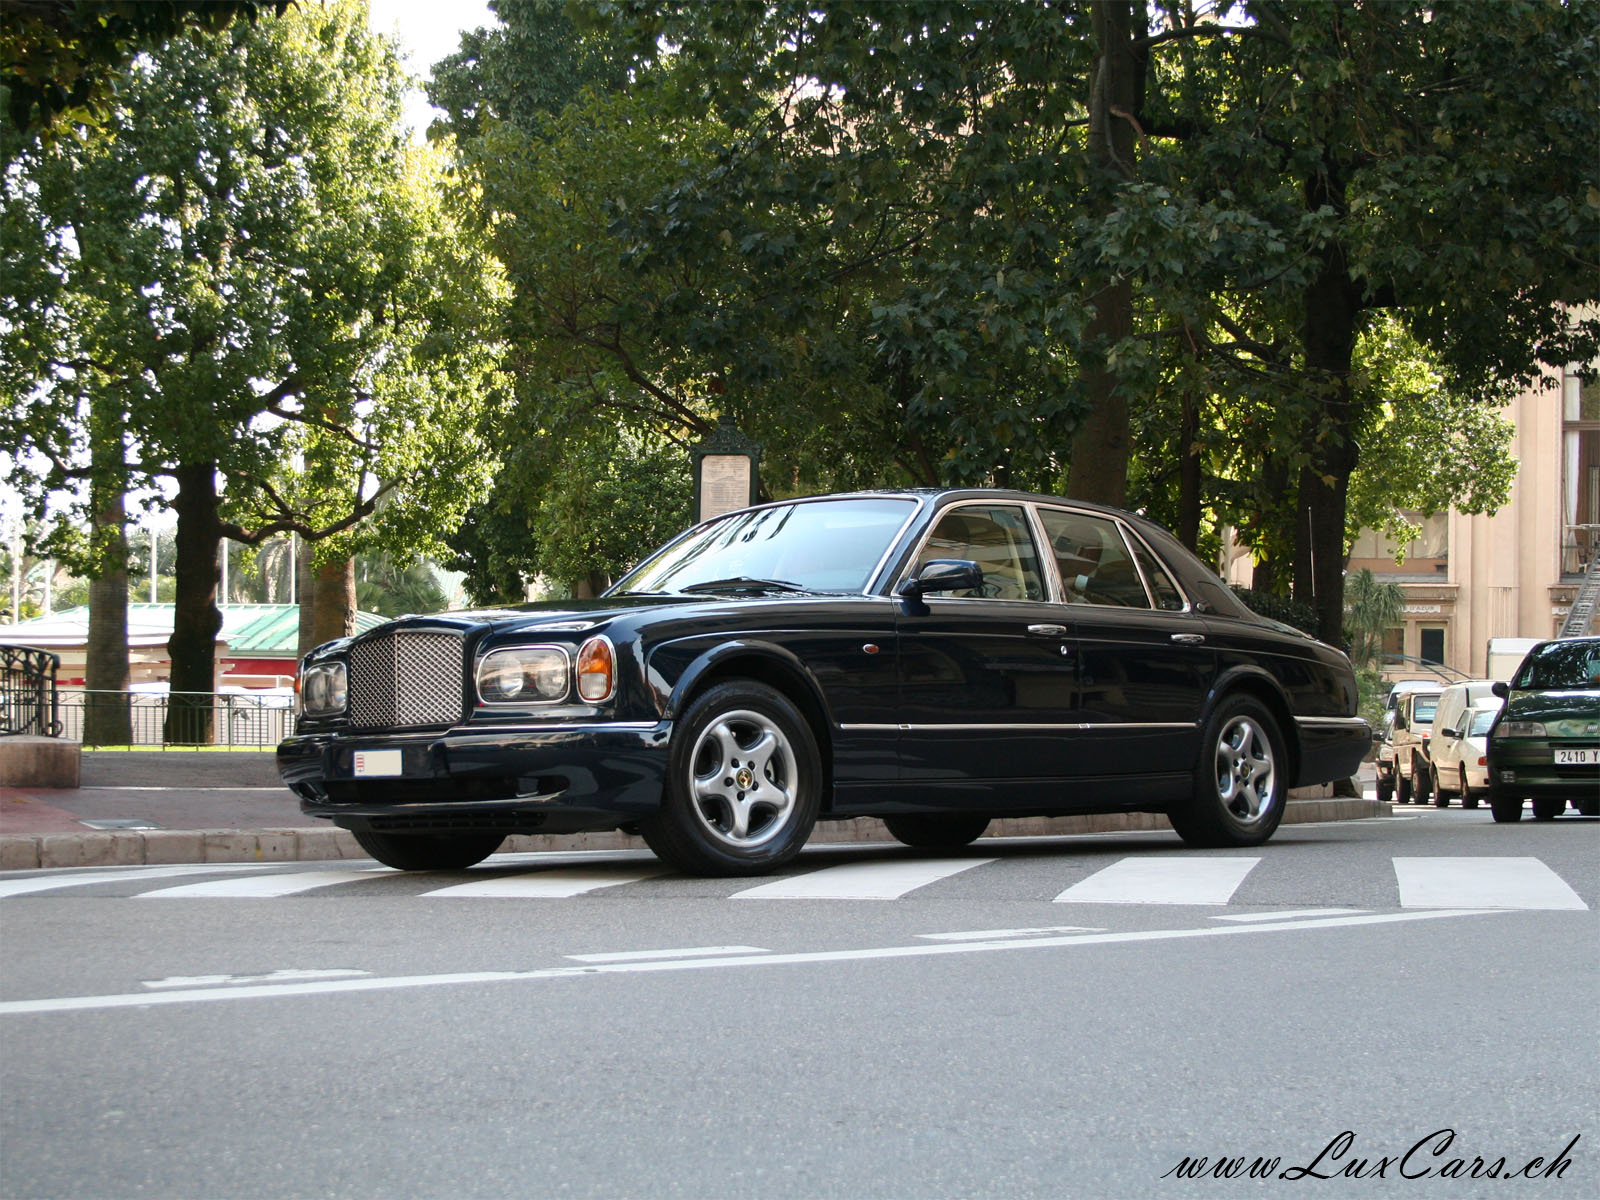 BENTLEY ARNAGE green